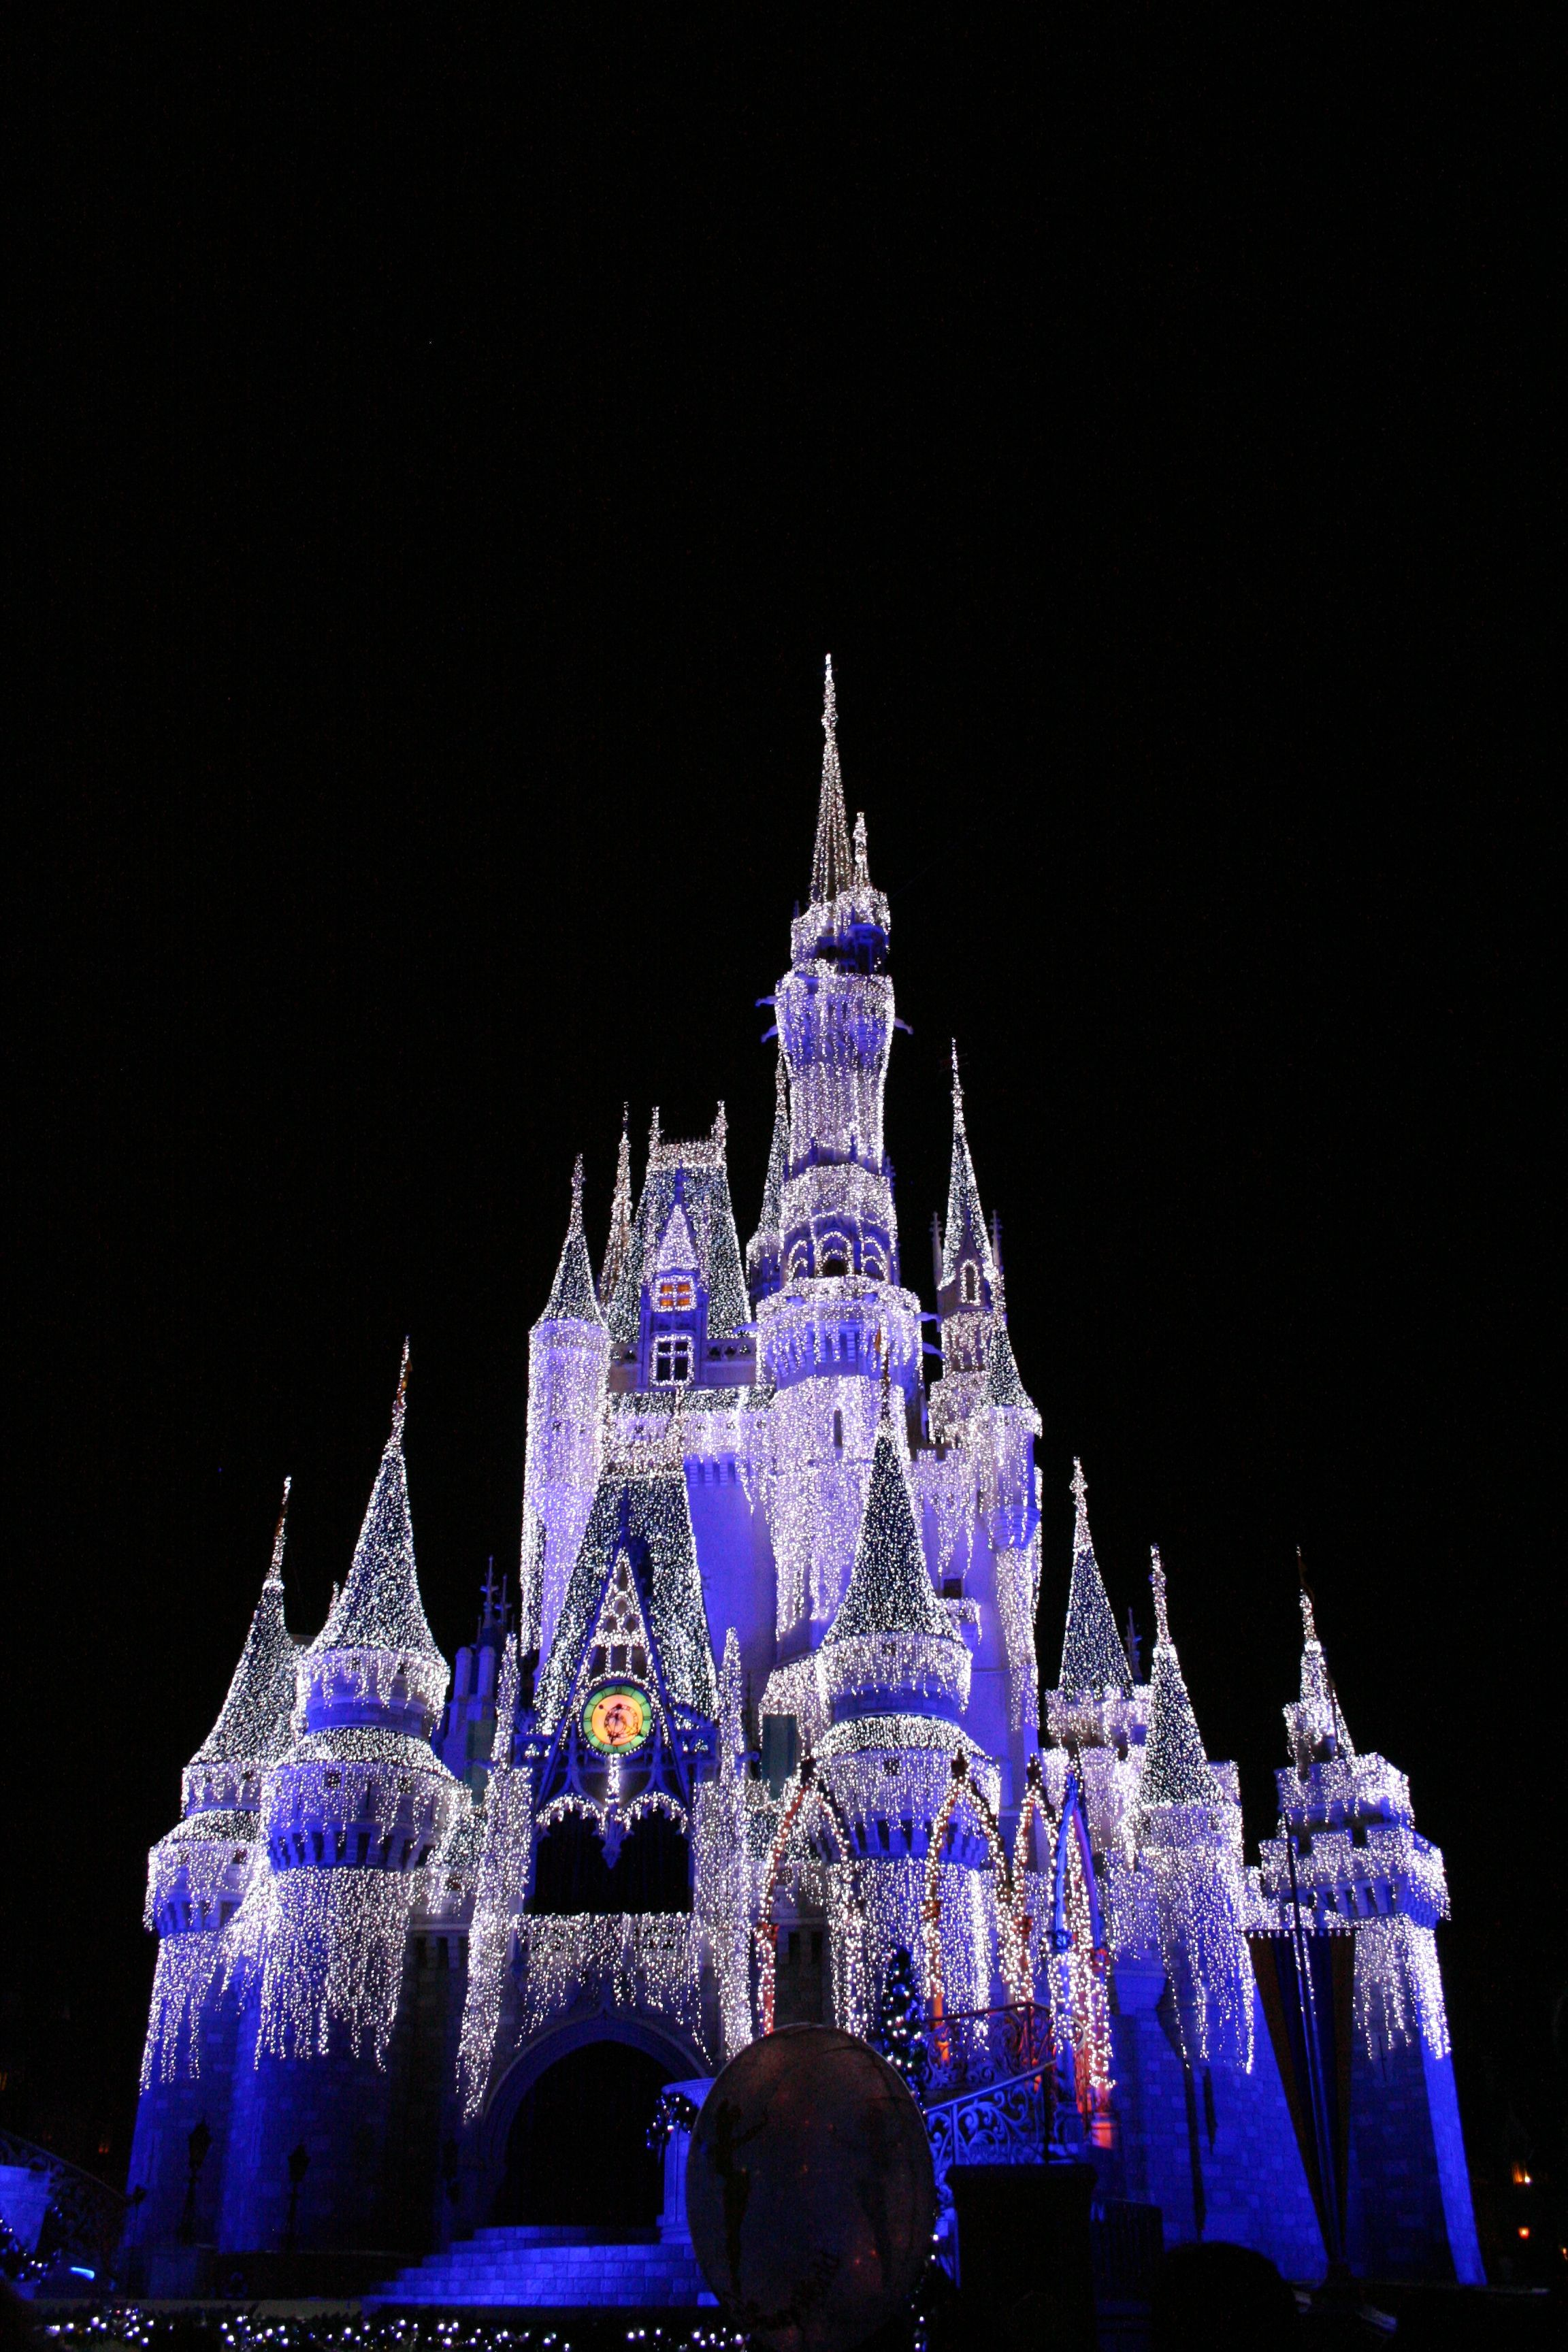 Cinderella Castle Dream Lights, Christmas in Magic Kingdom